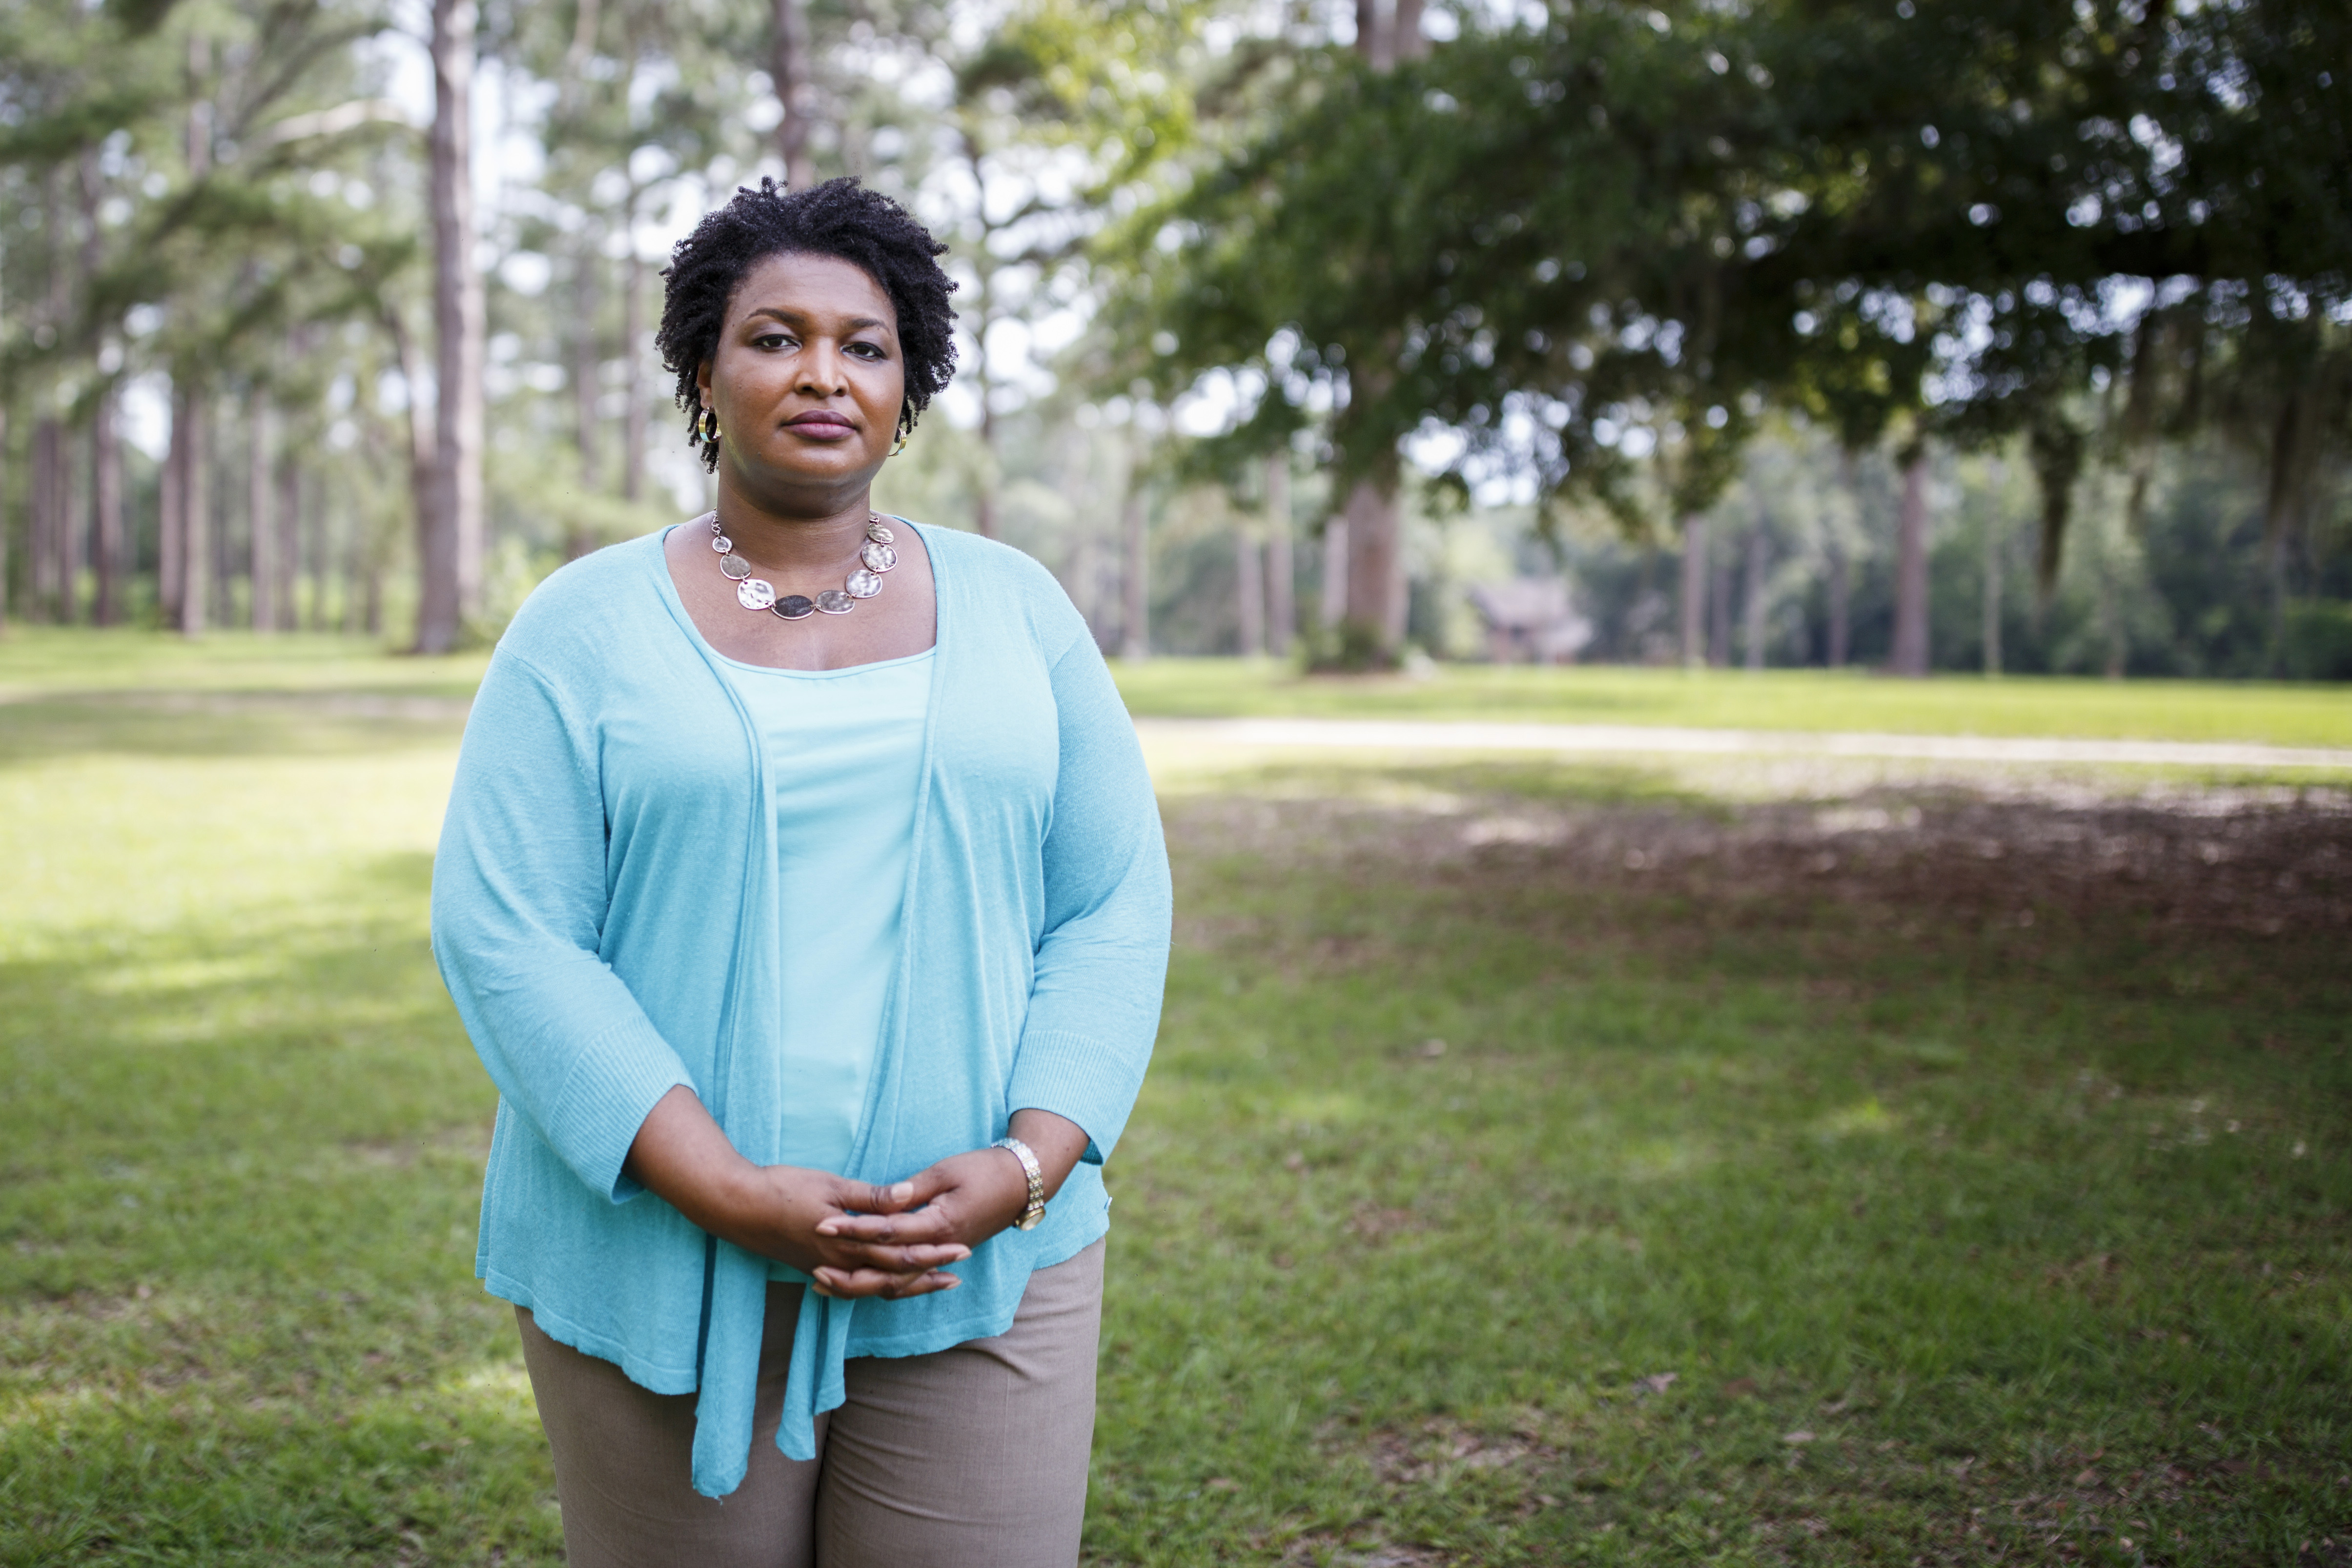 Abrams announced her run for governor in June 2017.